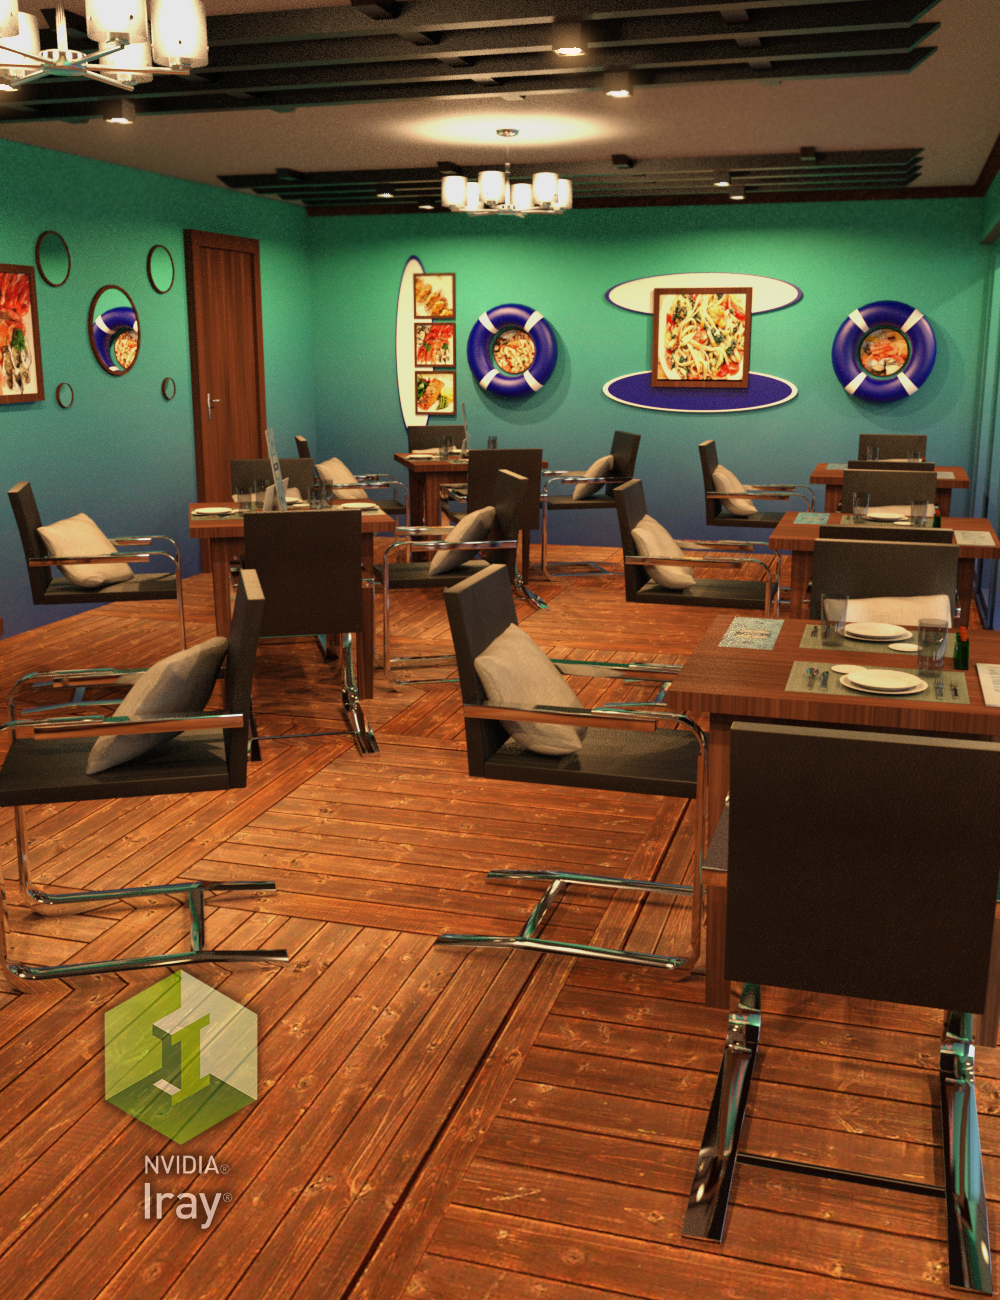 Seafood Restaurant by: Tesla3dCorp, 3D Models by Daz 3D